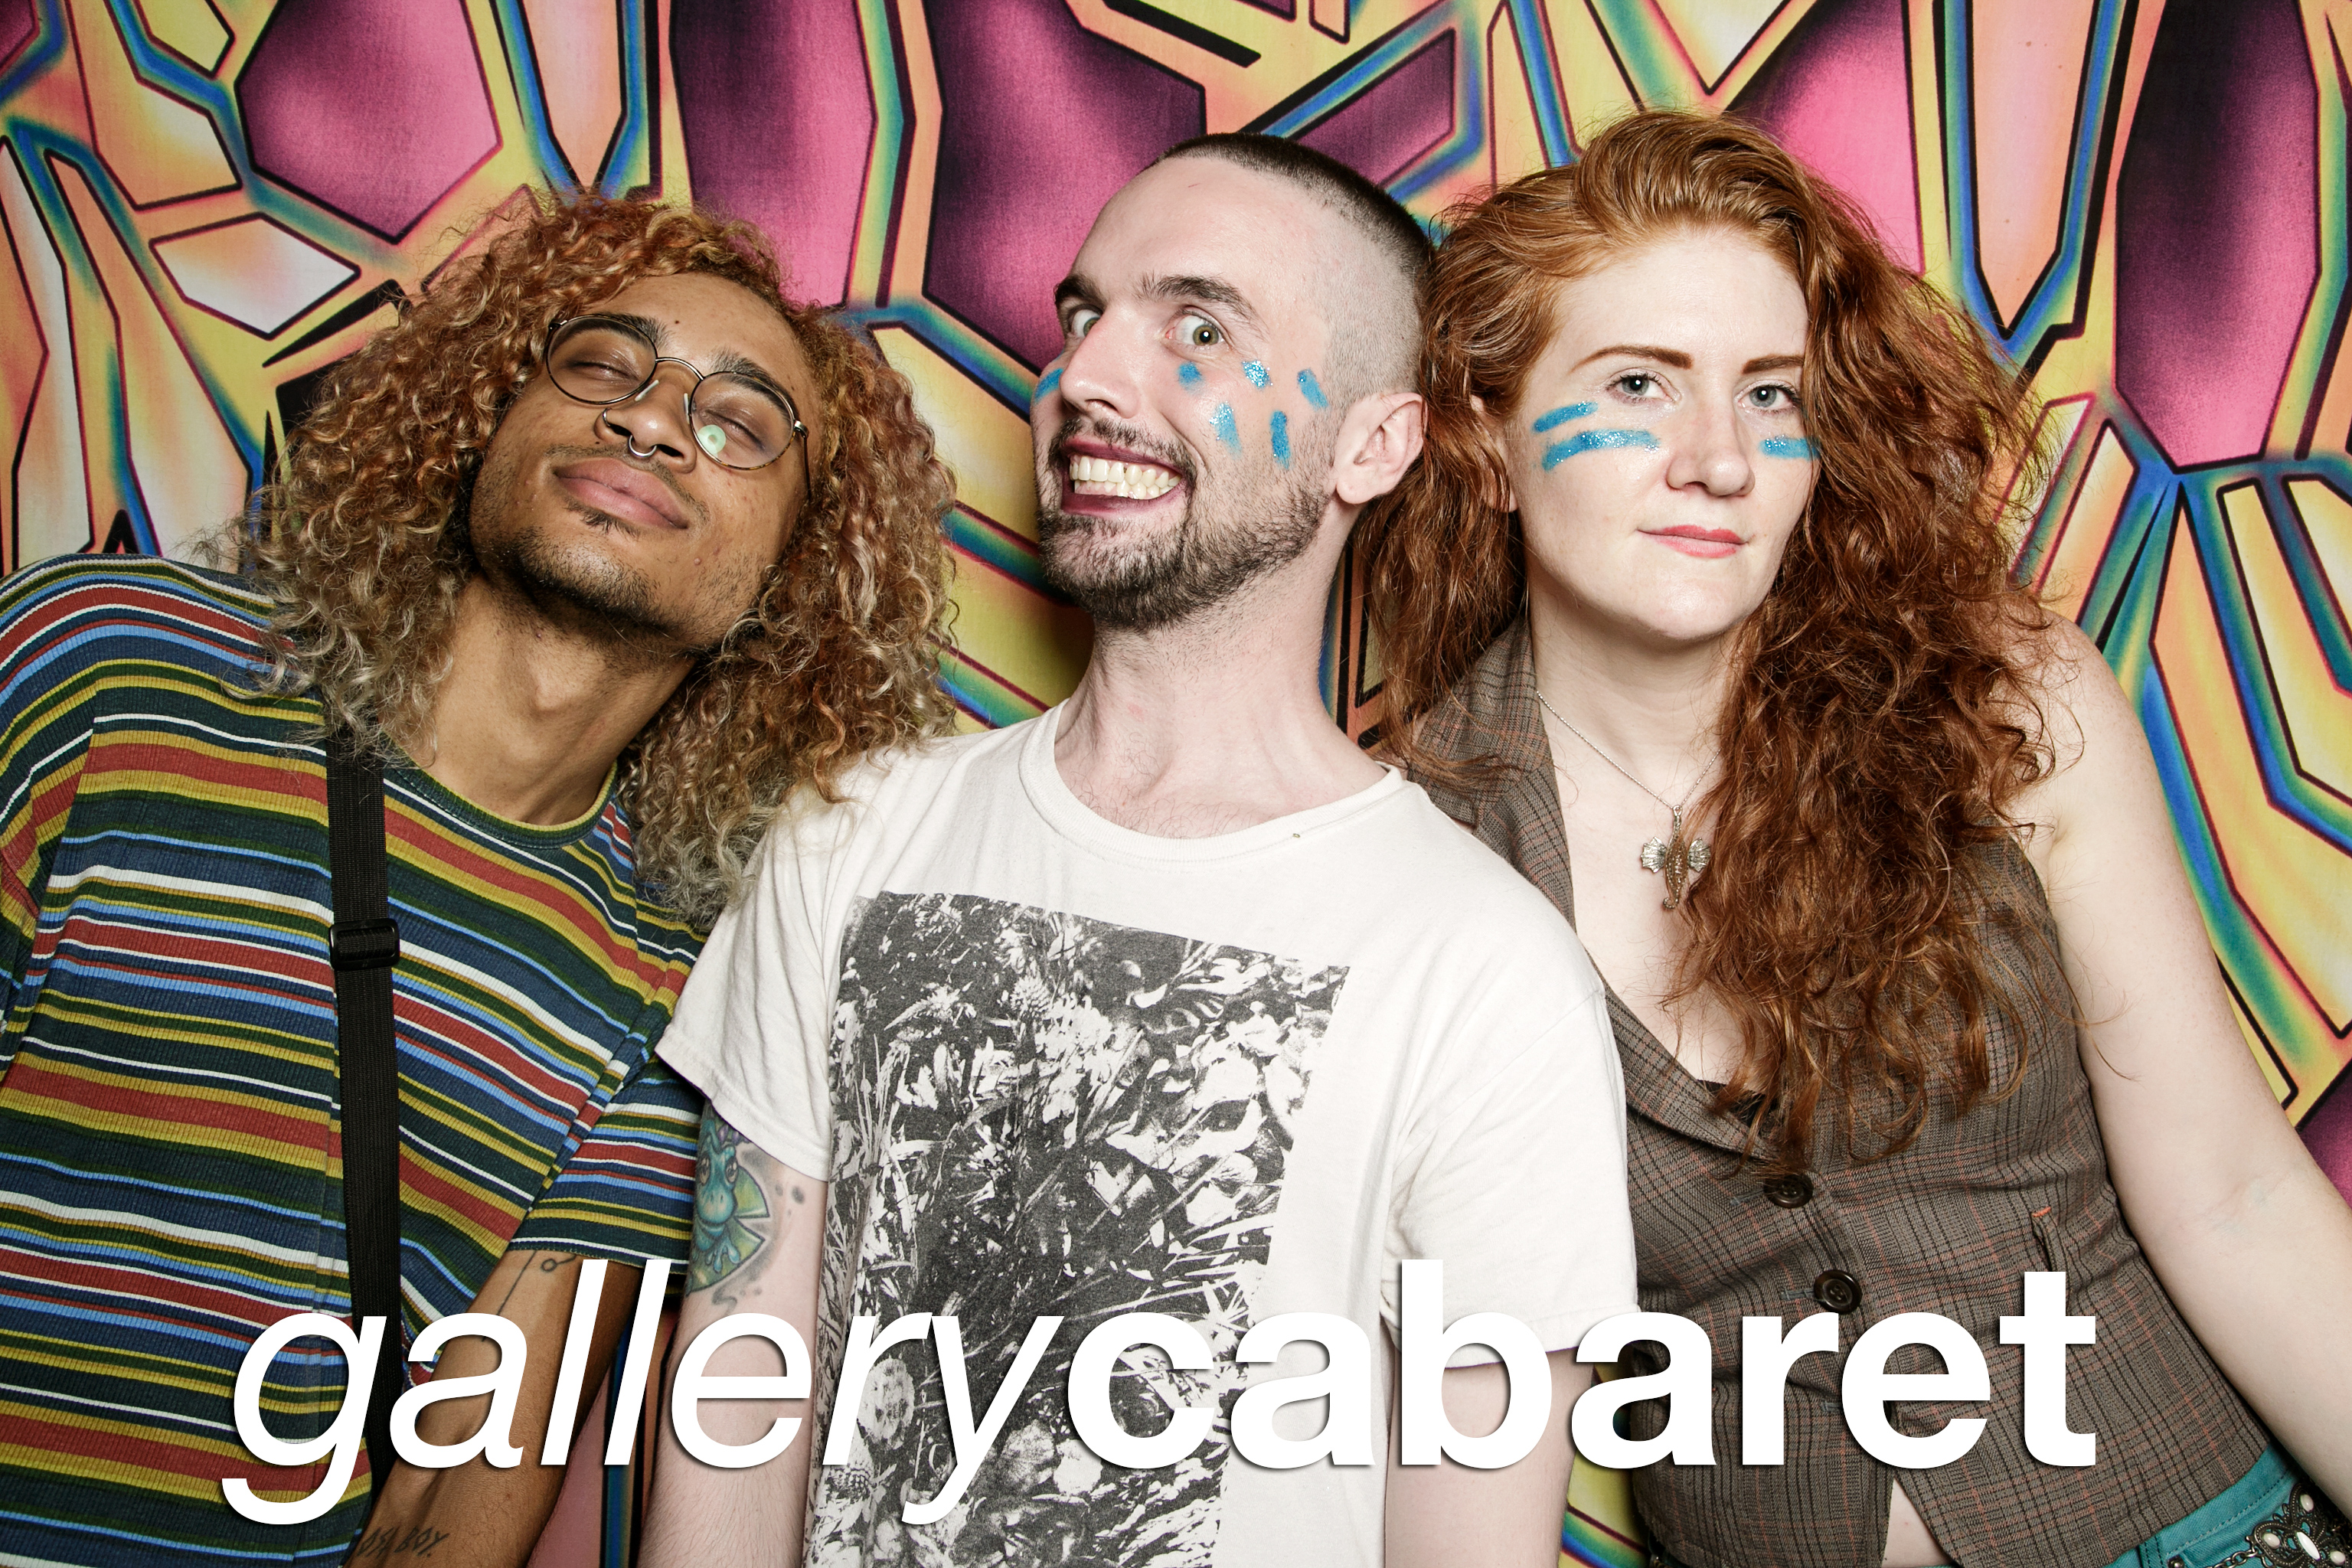 glitterguts portrait booth photos from gallery cabaret, chicago 2018